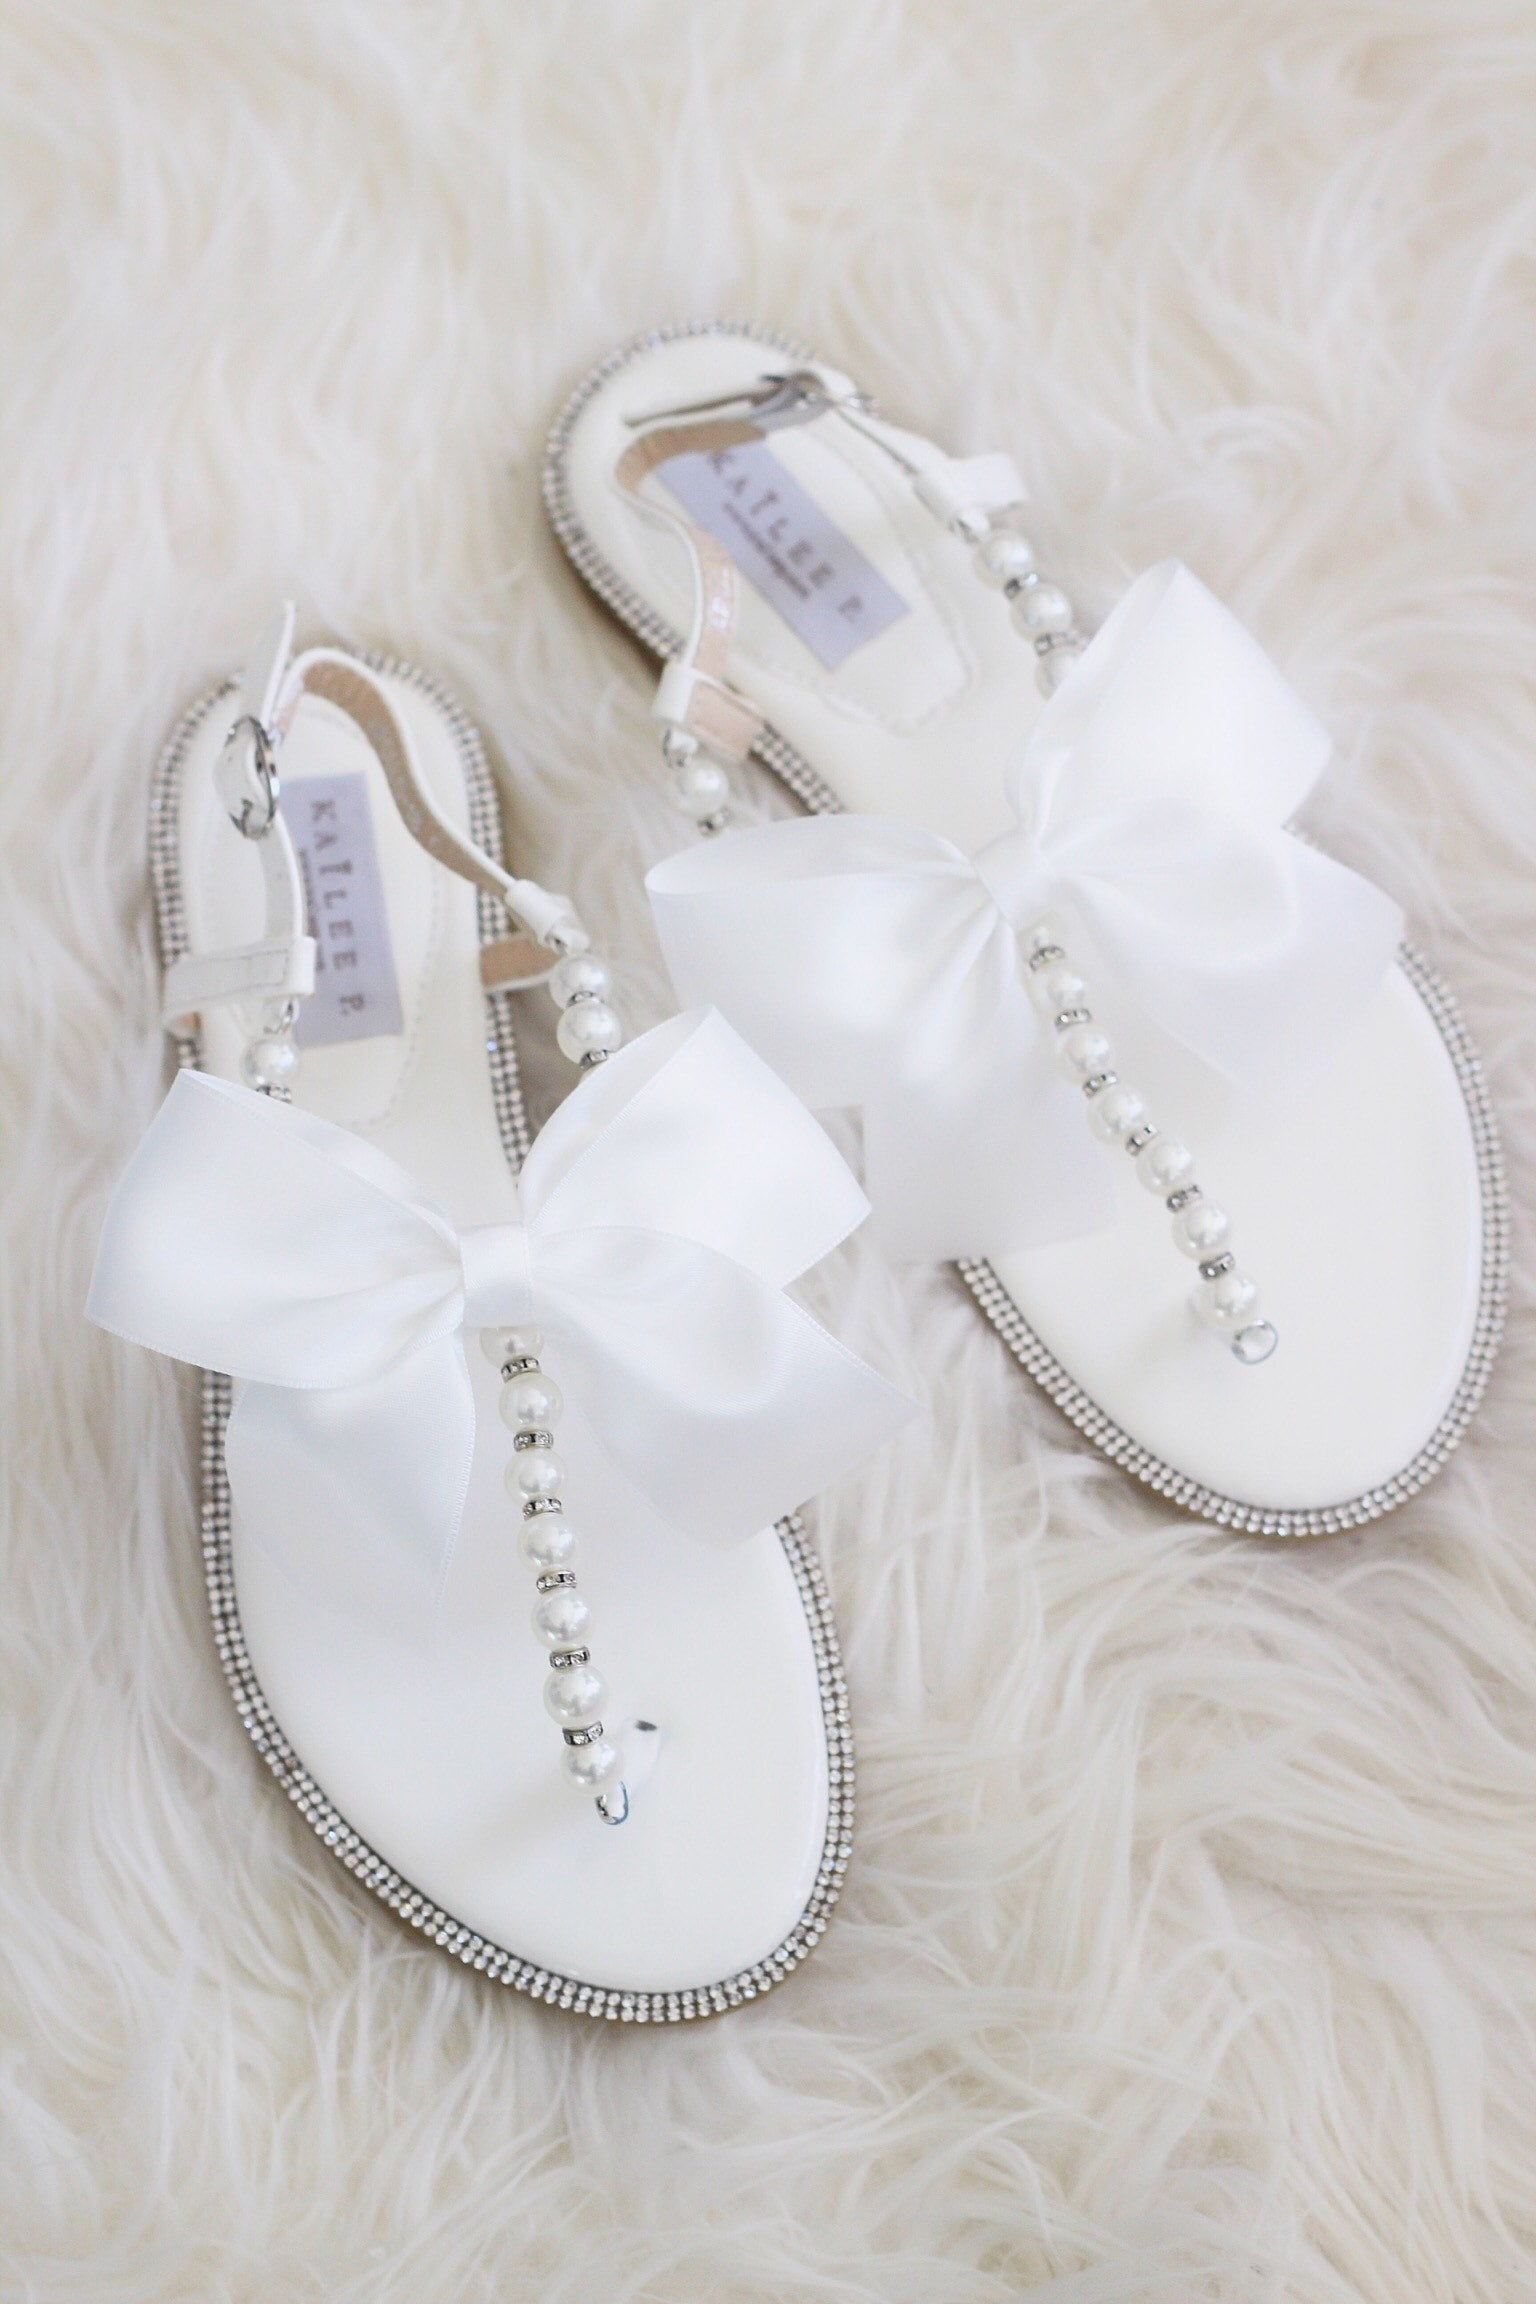 7d0ccb433 Women and Girls Sandals OFF WHITE with Pearls   SILVER Beads